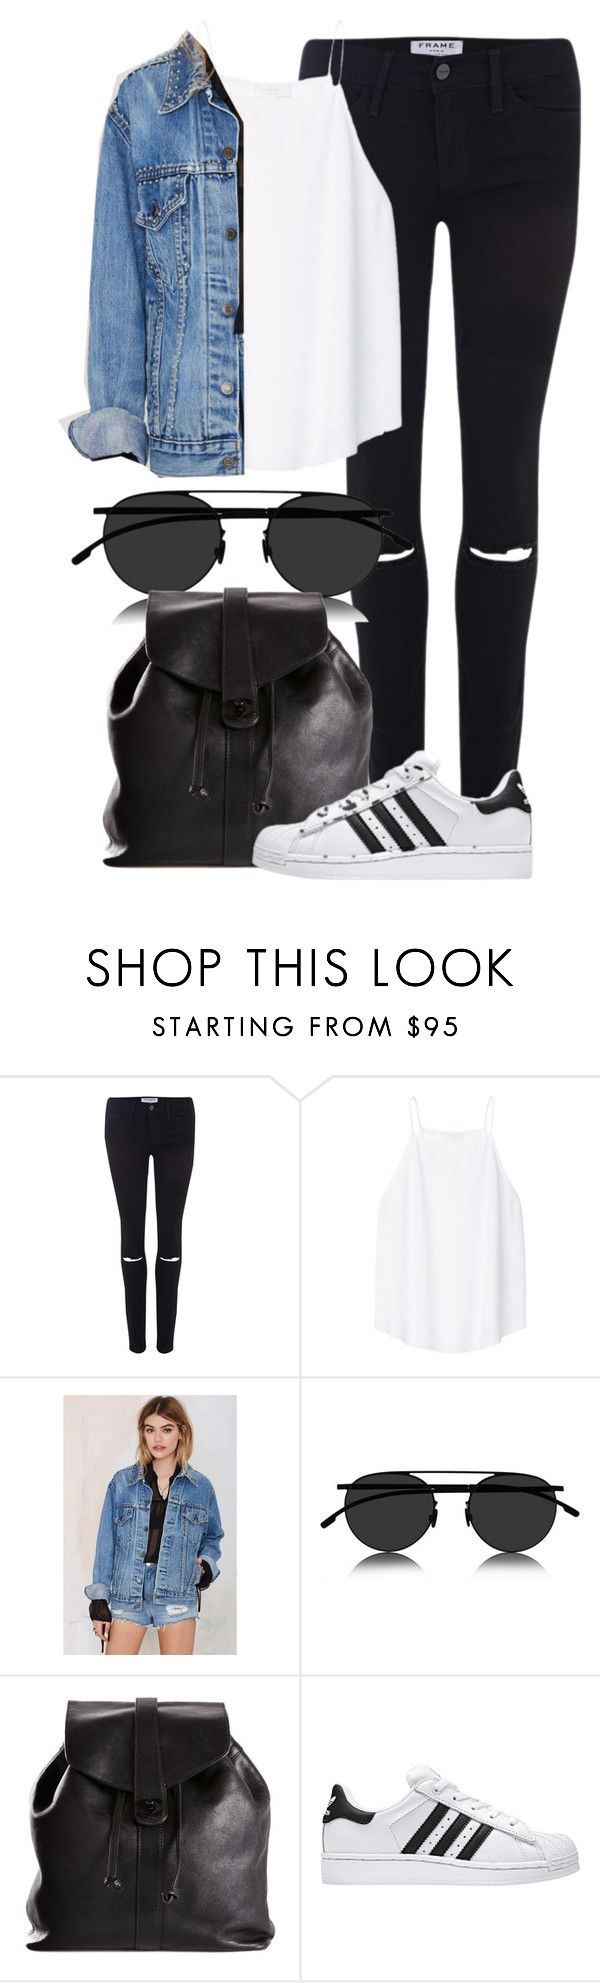 """""""Untitled #1917"""" by annielizjung ❤ liked on Polyvore featuring Frame, Wilfred, American Vintage, Mykita and Chanel"""